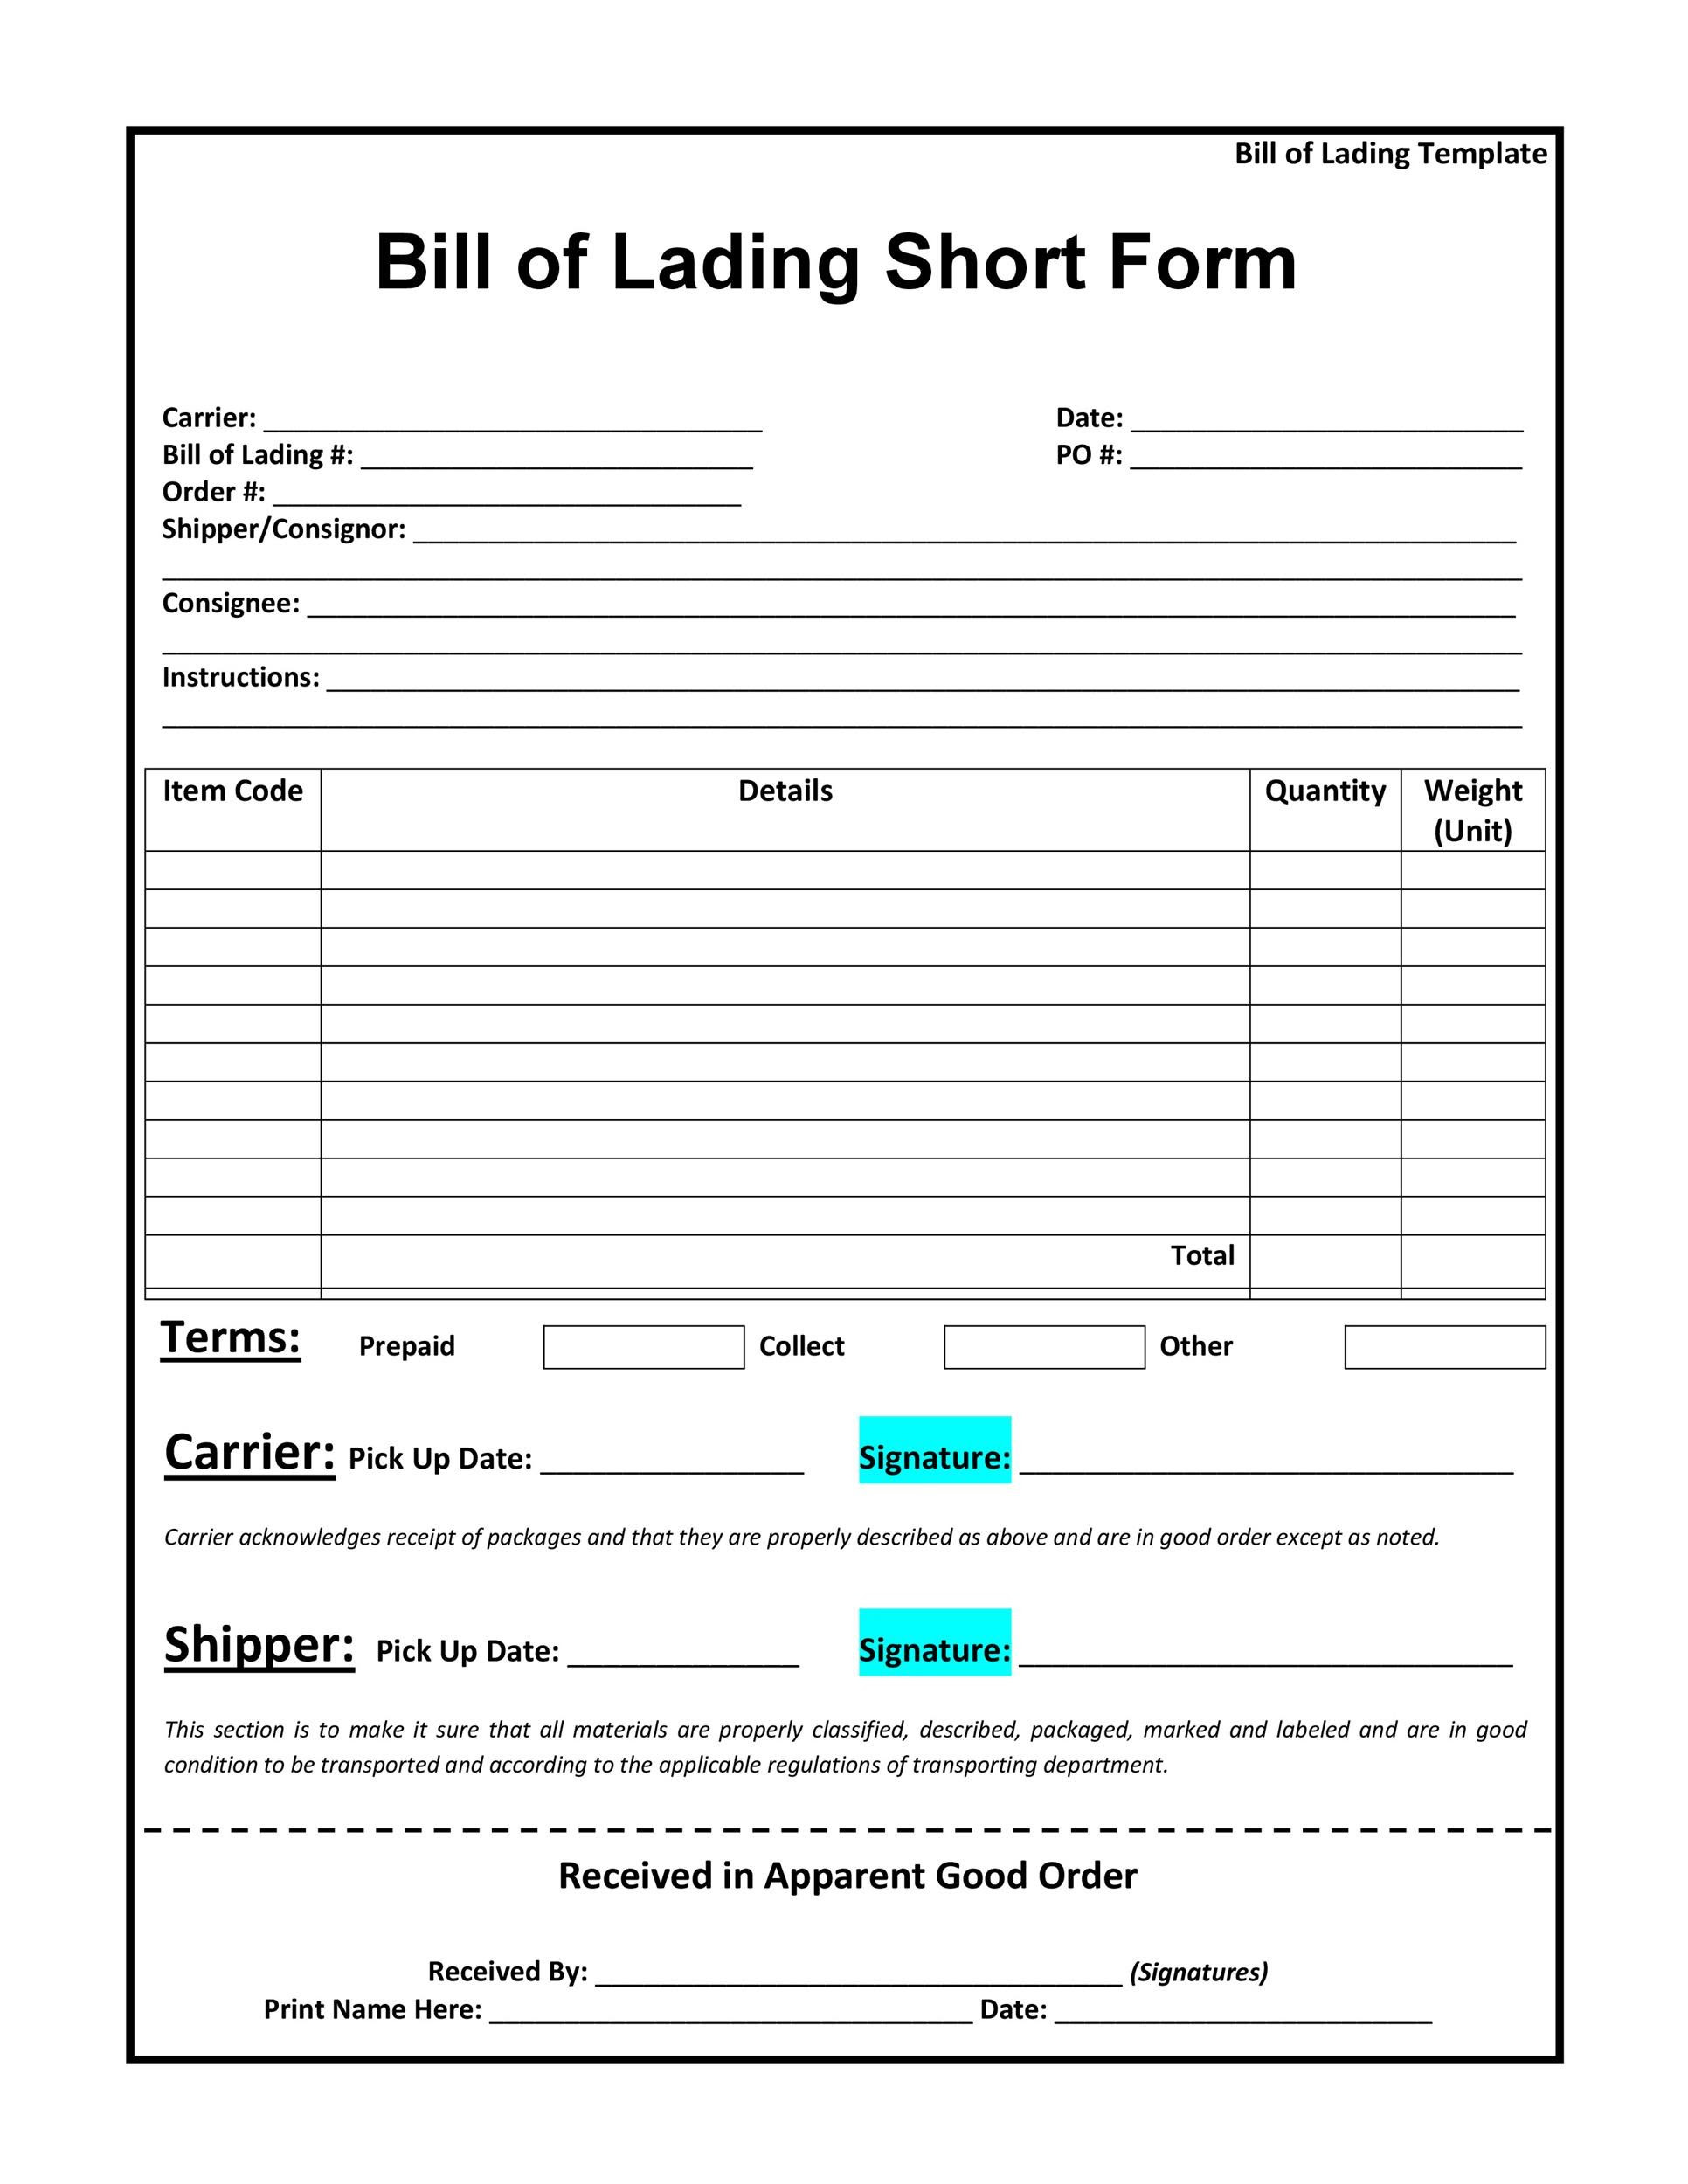 Bill Of Lading Template Excel from lh6.googleusercontent.com